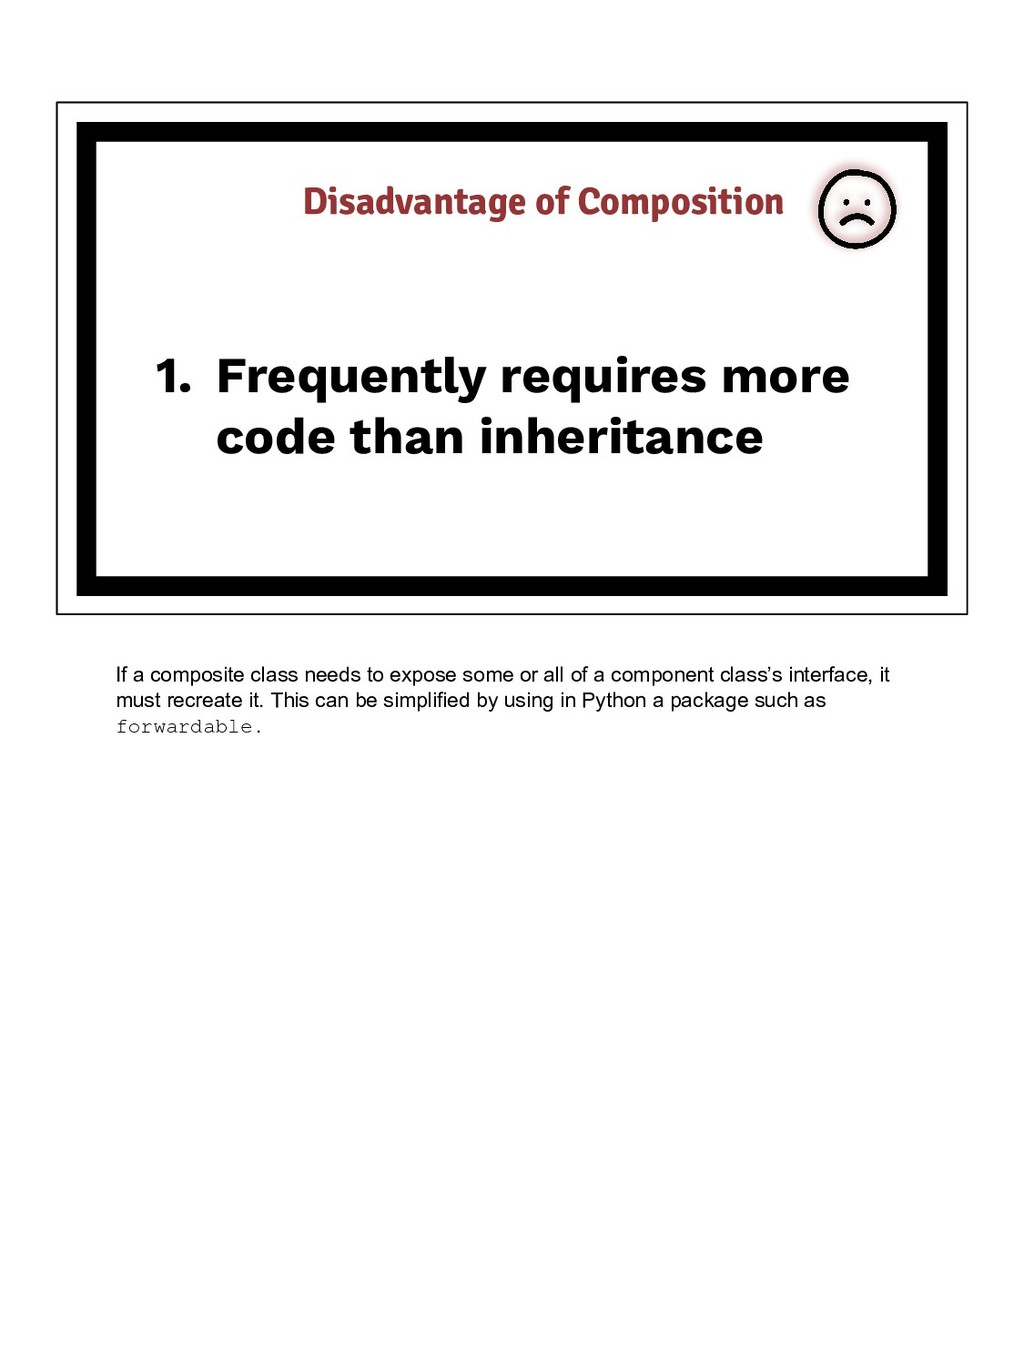 1. Frequently requires more code than inheritan...